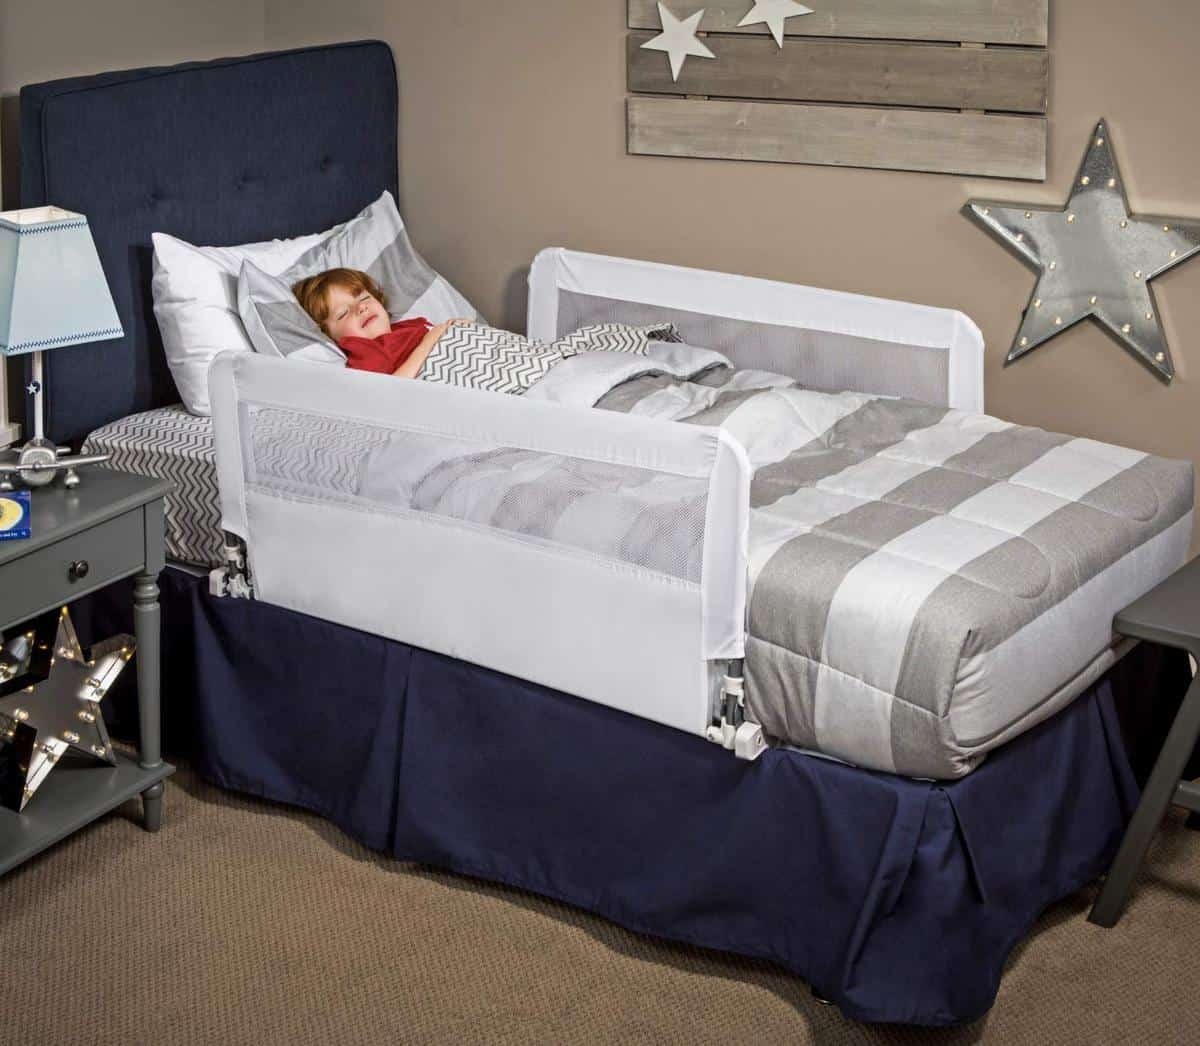 4 Crib To Toddler Bed Transitioning Tips When Switching Beds